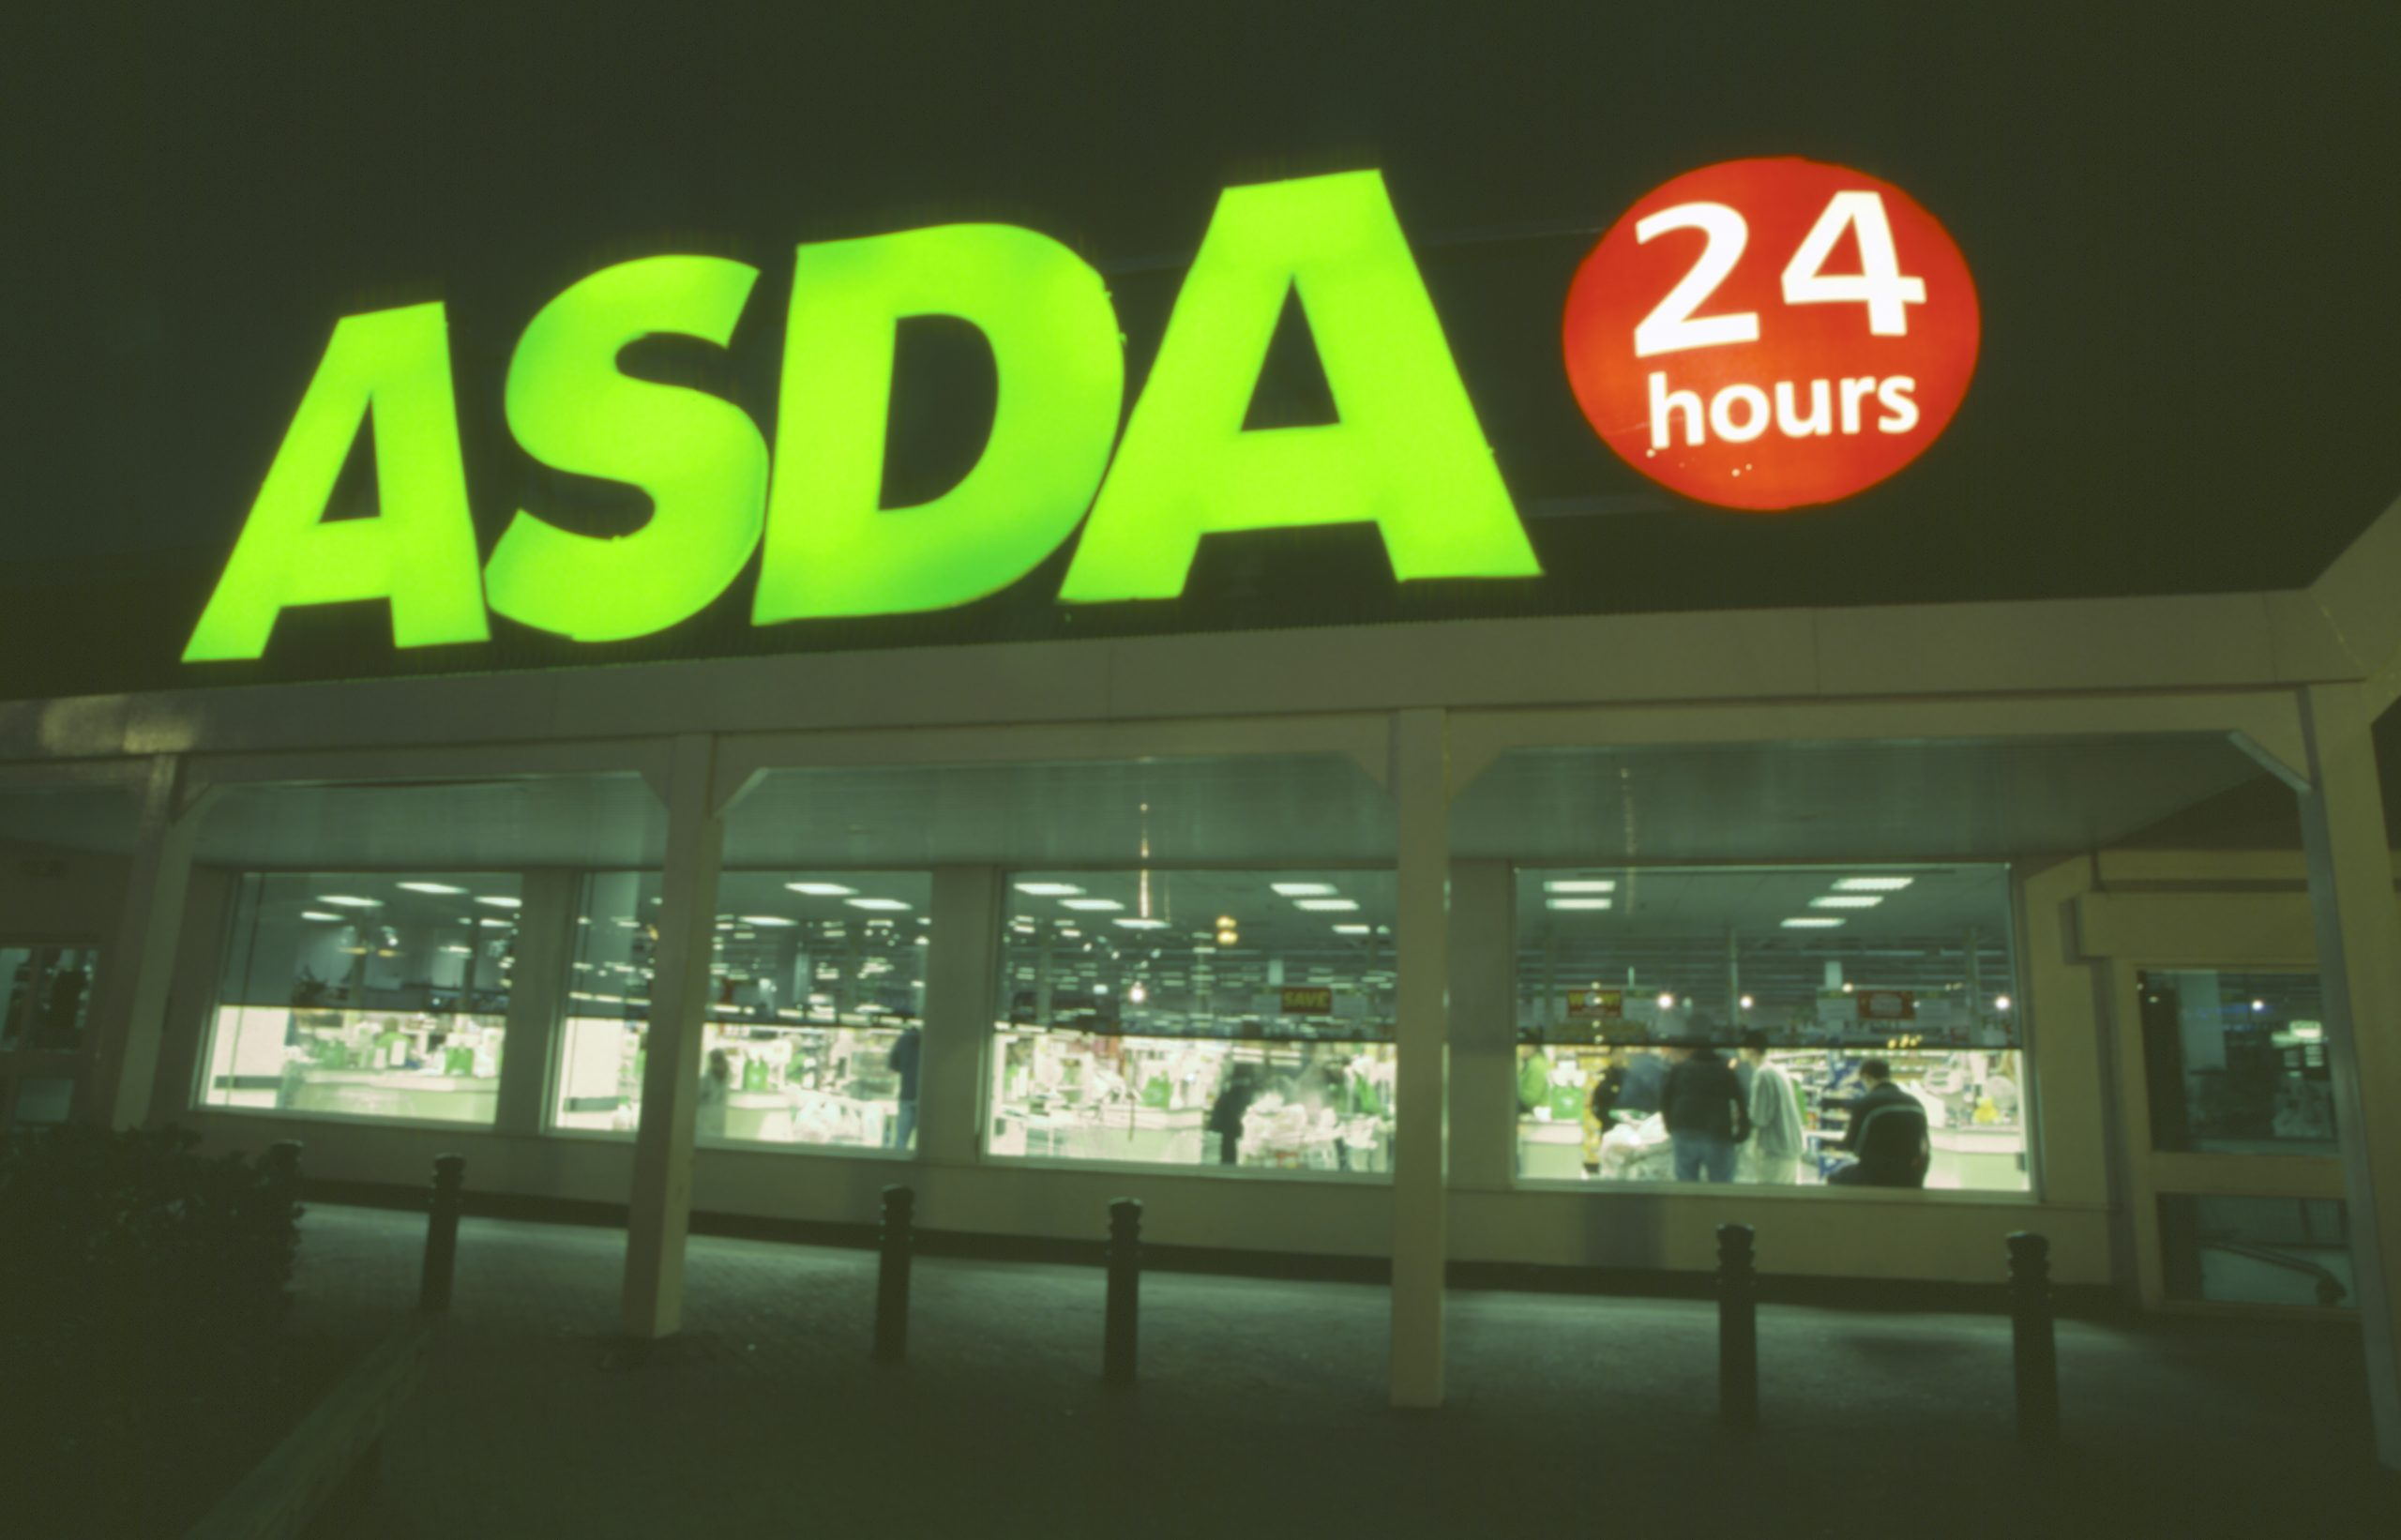 Asda Easter opening times – including Good Friday and Bank Holiday Monday